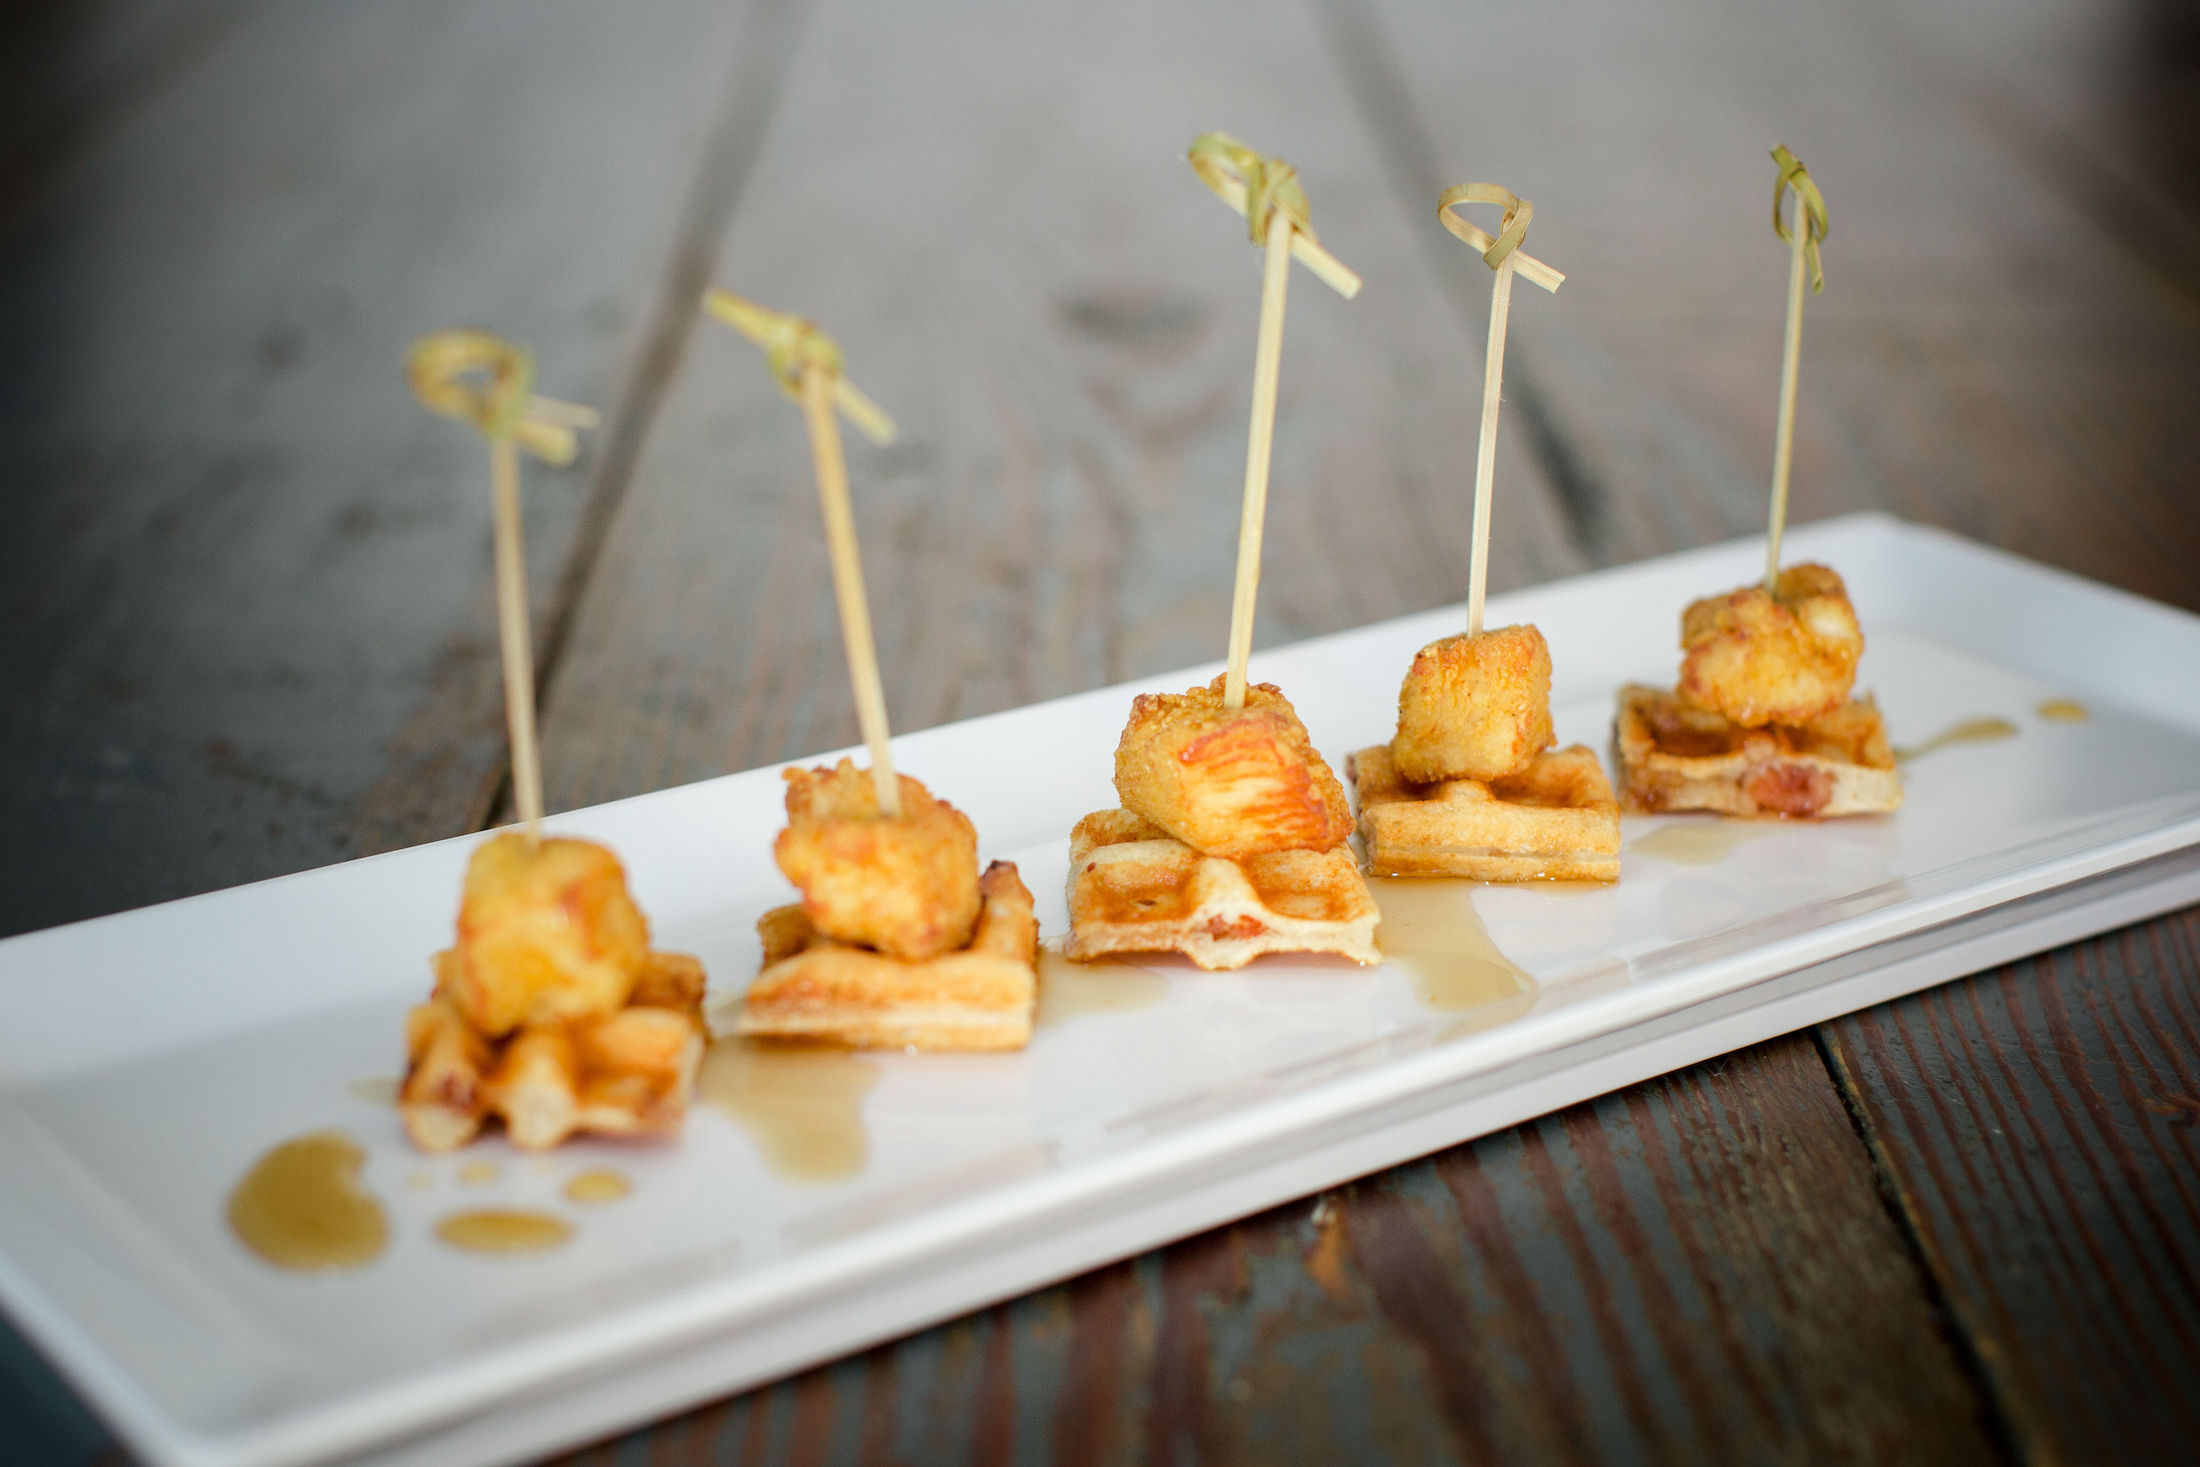 STANDARD PACKAGE - 5 tapas selections total, 10-12 pieces per person3 servings of standard alcoholstarting at $89 per person